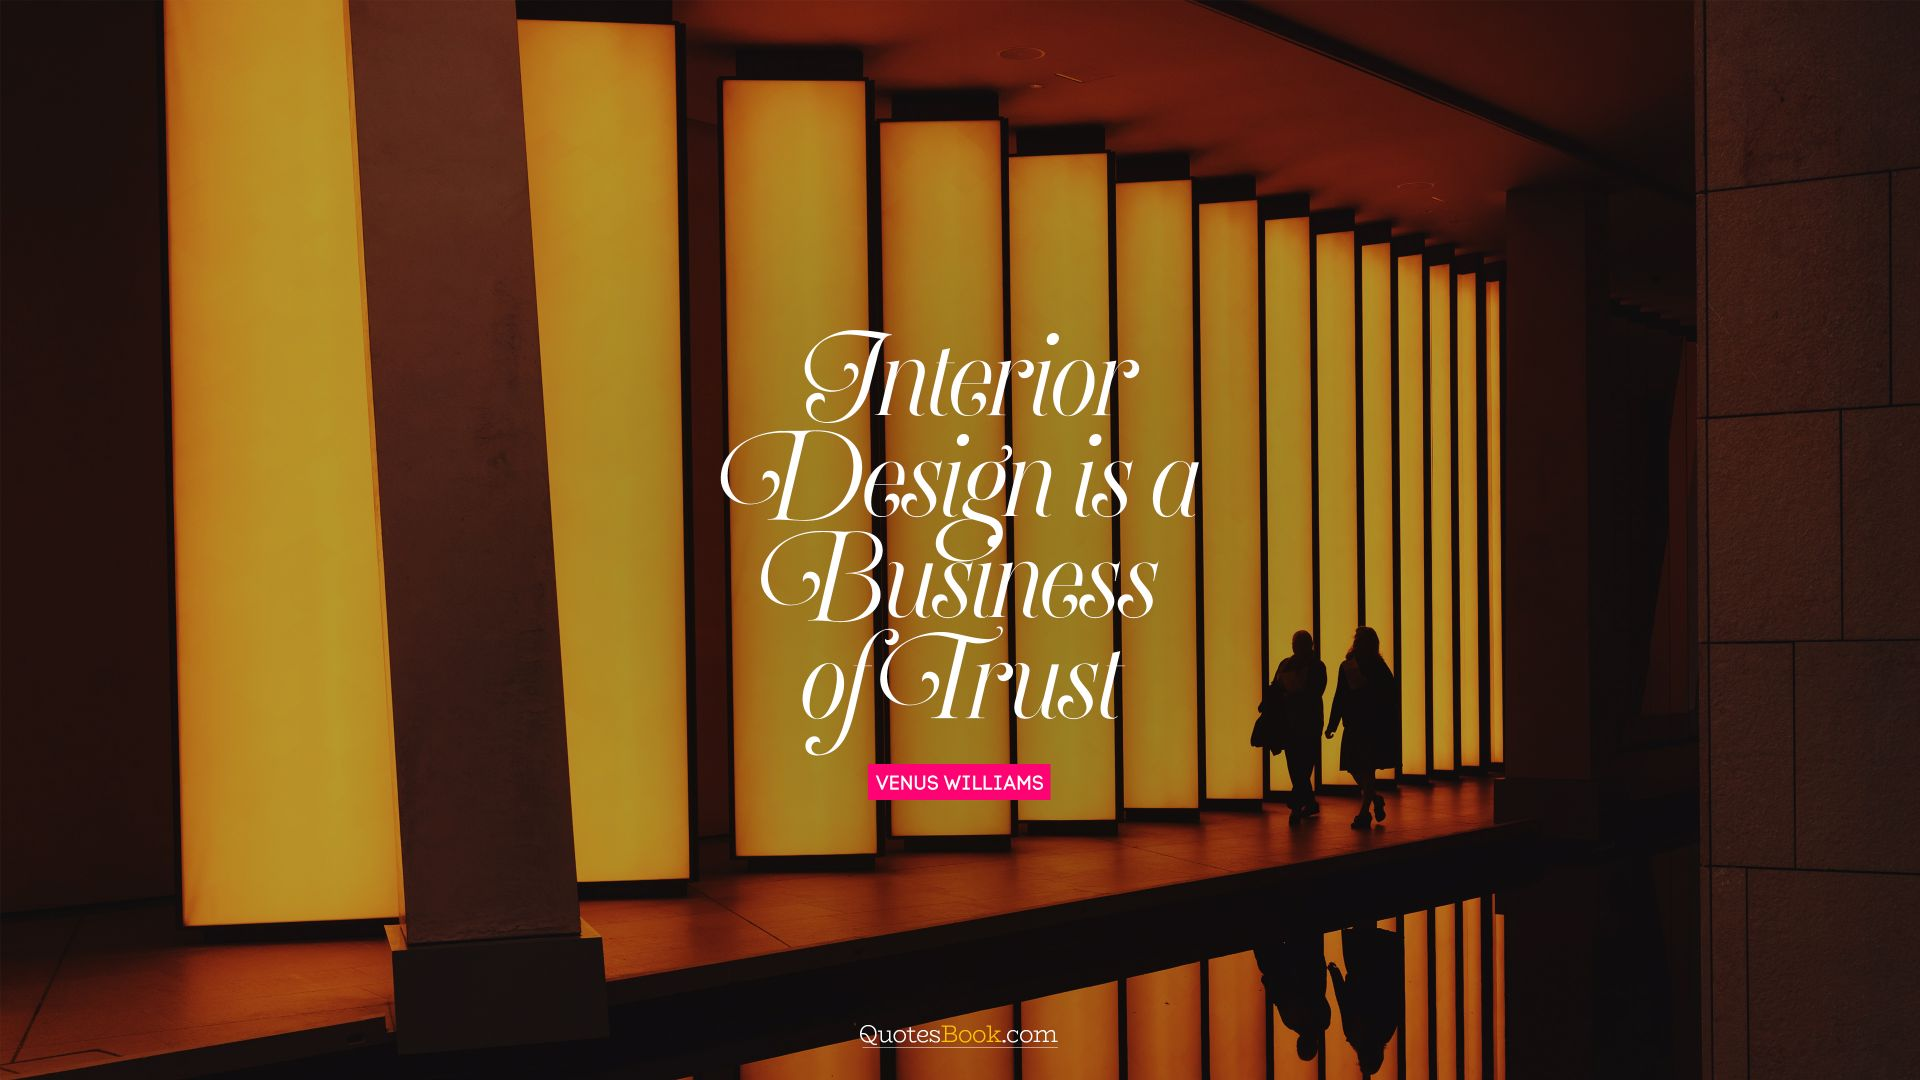 Interior design is a business of trust. - Quote by Venus Williams